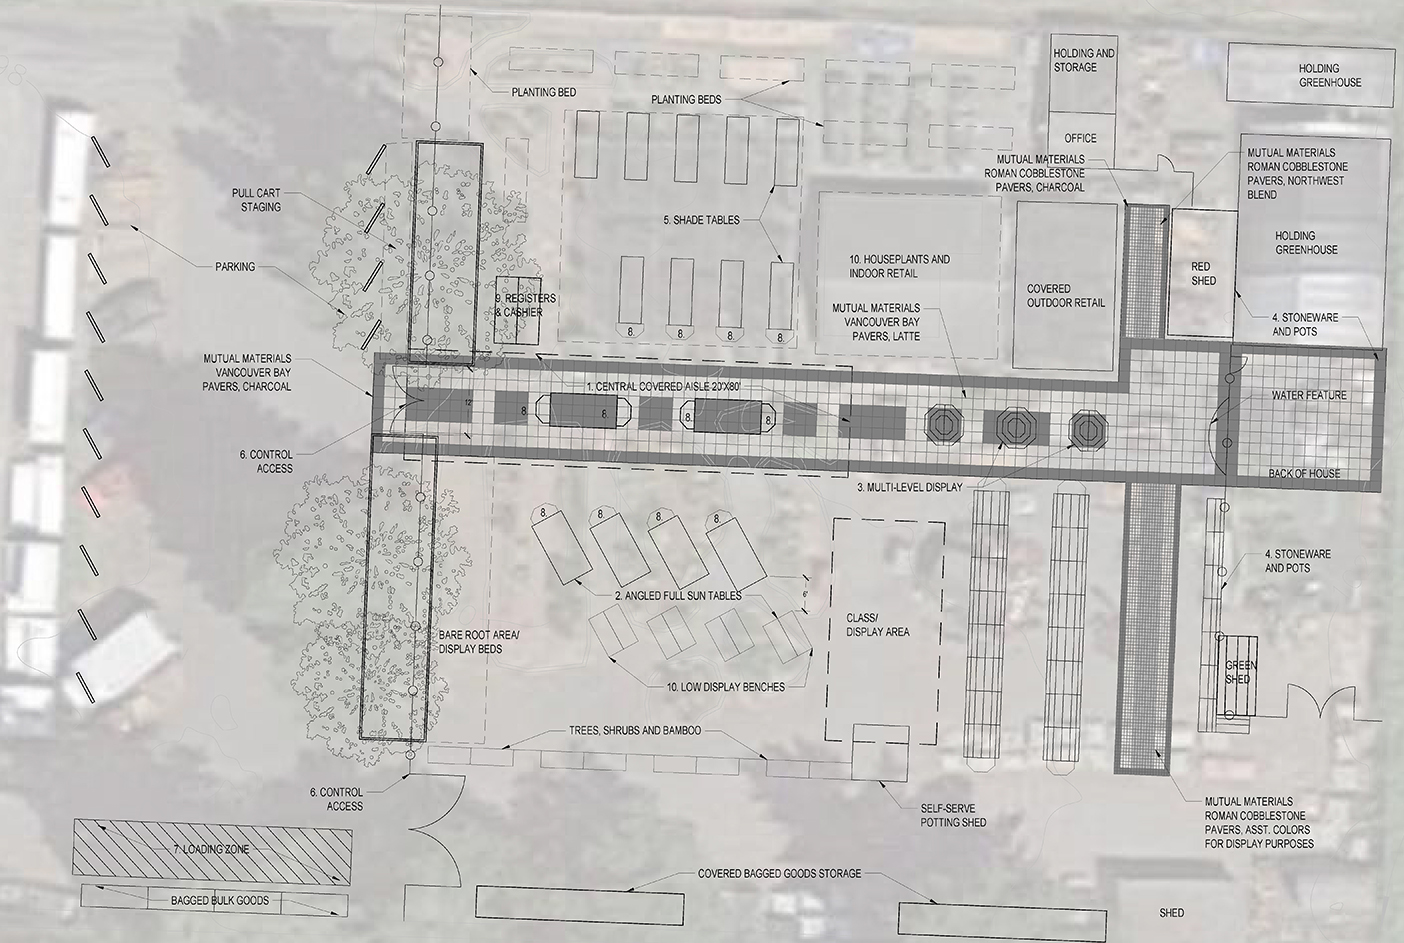 The new plan for the Garden Center created a central axis with display tables for merchandising.